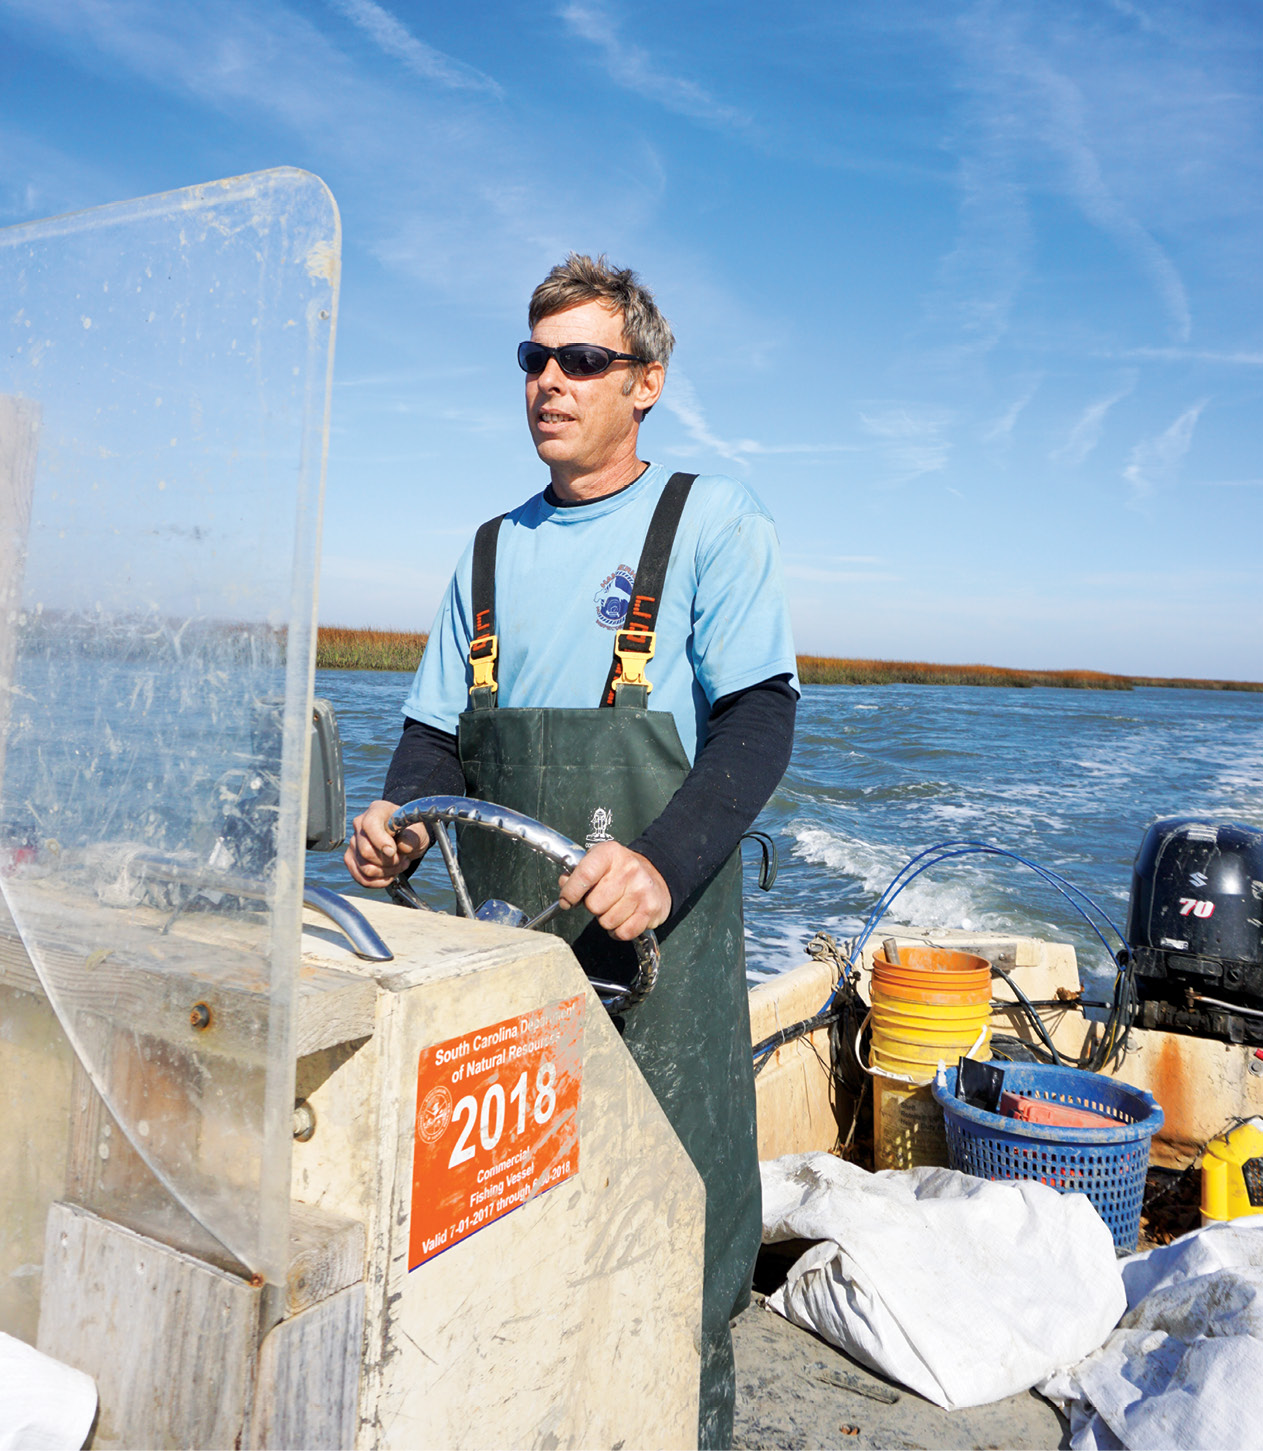 Jeff Spahrand his harvesting team could easily pick 40 bushels of oysters per day, but they typically stop at 10 to 20 bushels in order to keep their beds healthy.